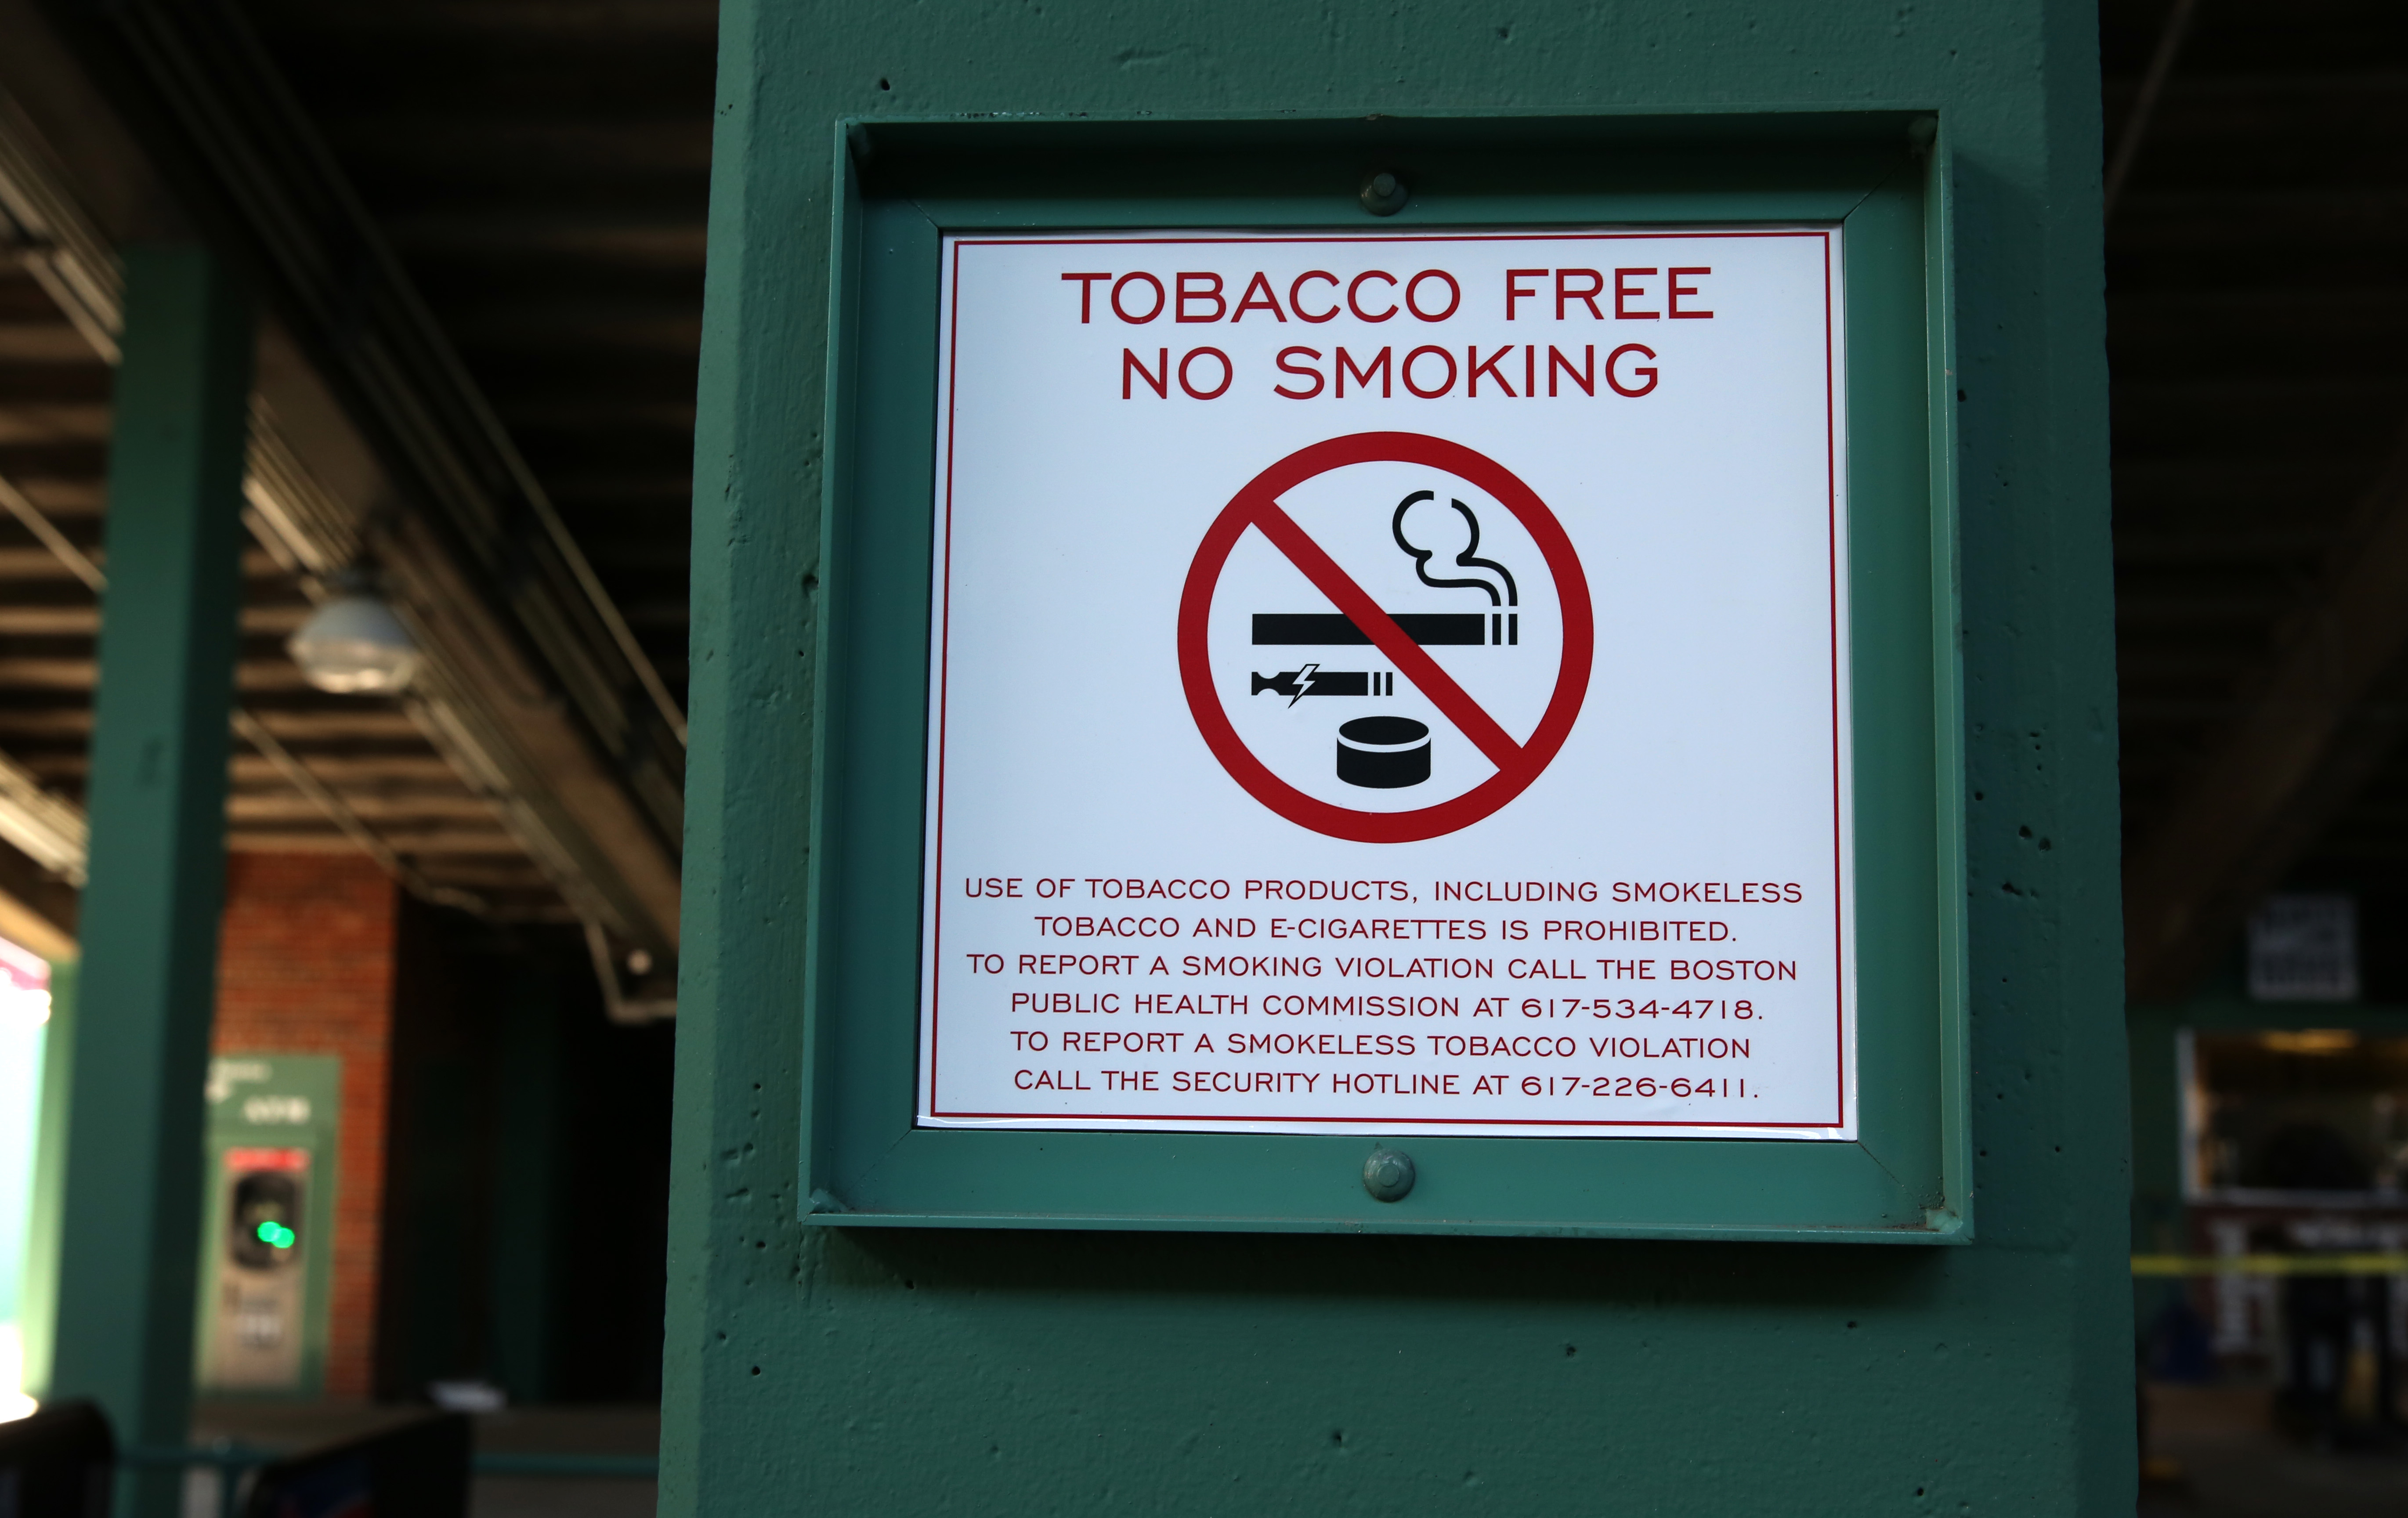 Play Ball! Just don't chew tobacco at Fenway - The Boston Globe